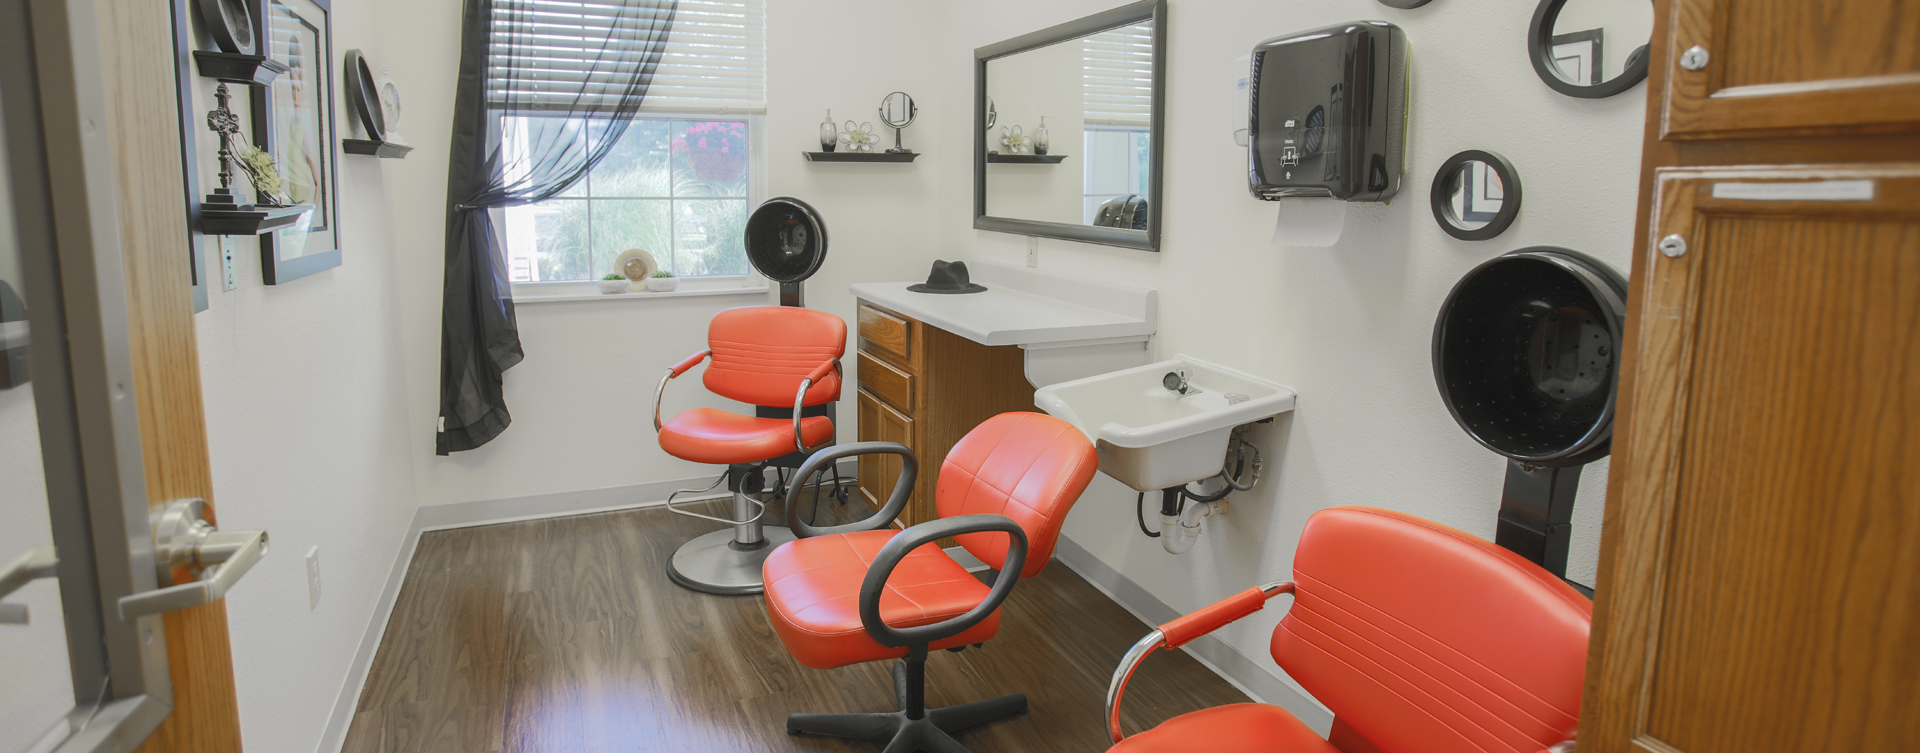 Receive personalized, at-home treatment from our stylist in the salon at Bickford of Crawfordsville